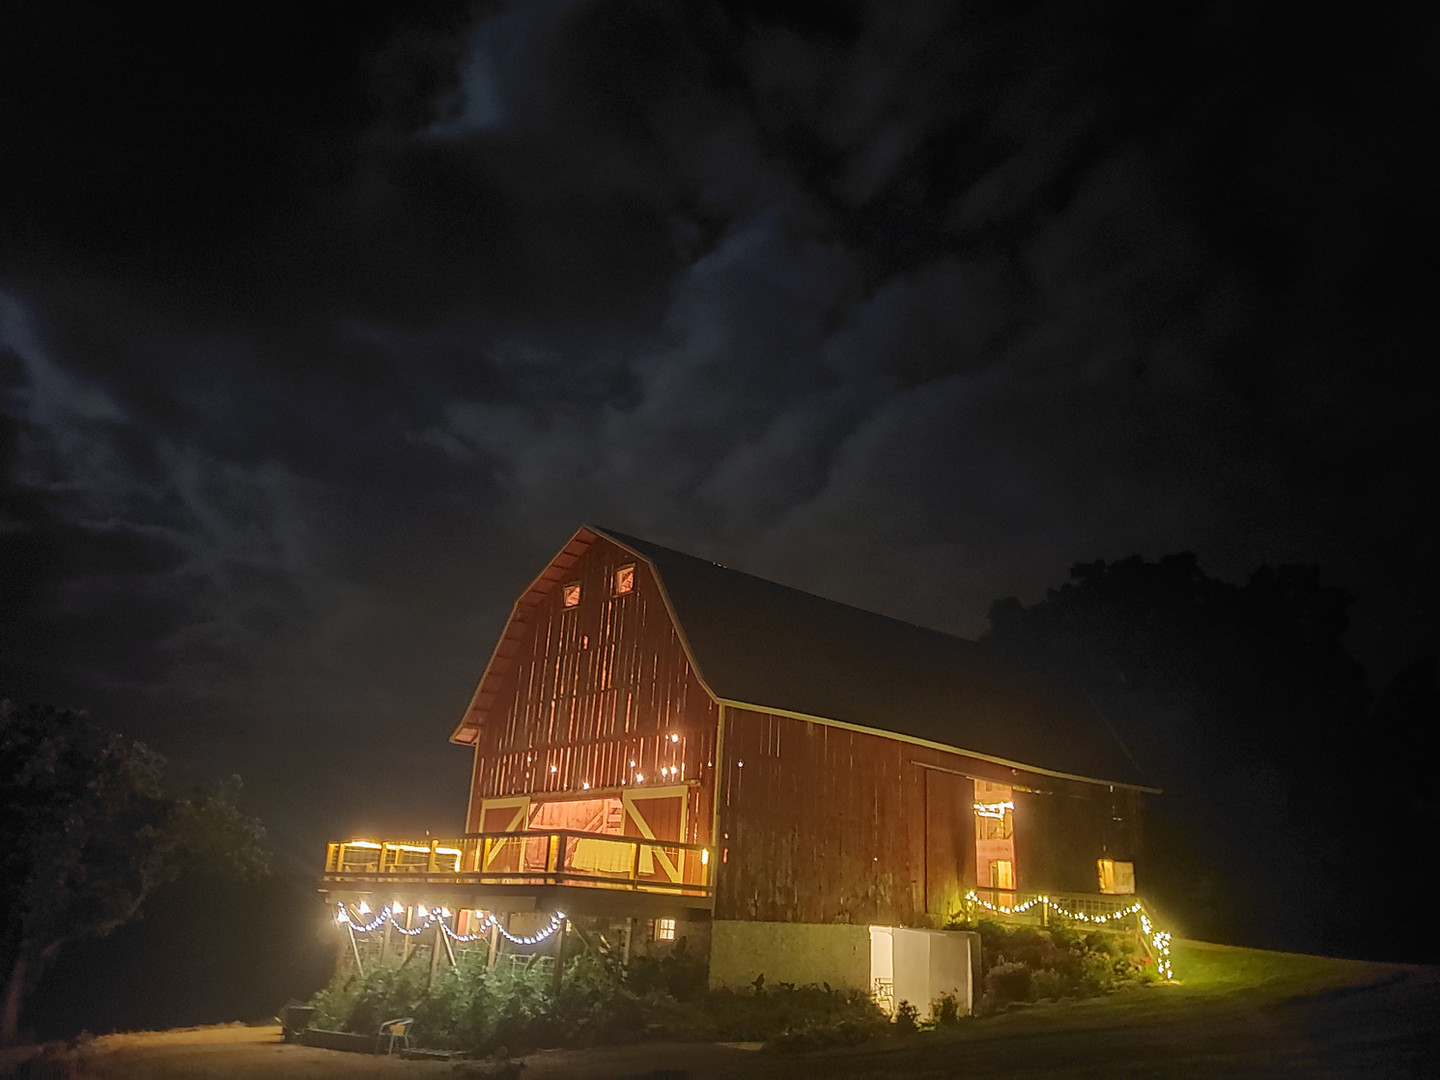 The Wedding Barn All Lit Up in the Evening